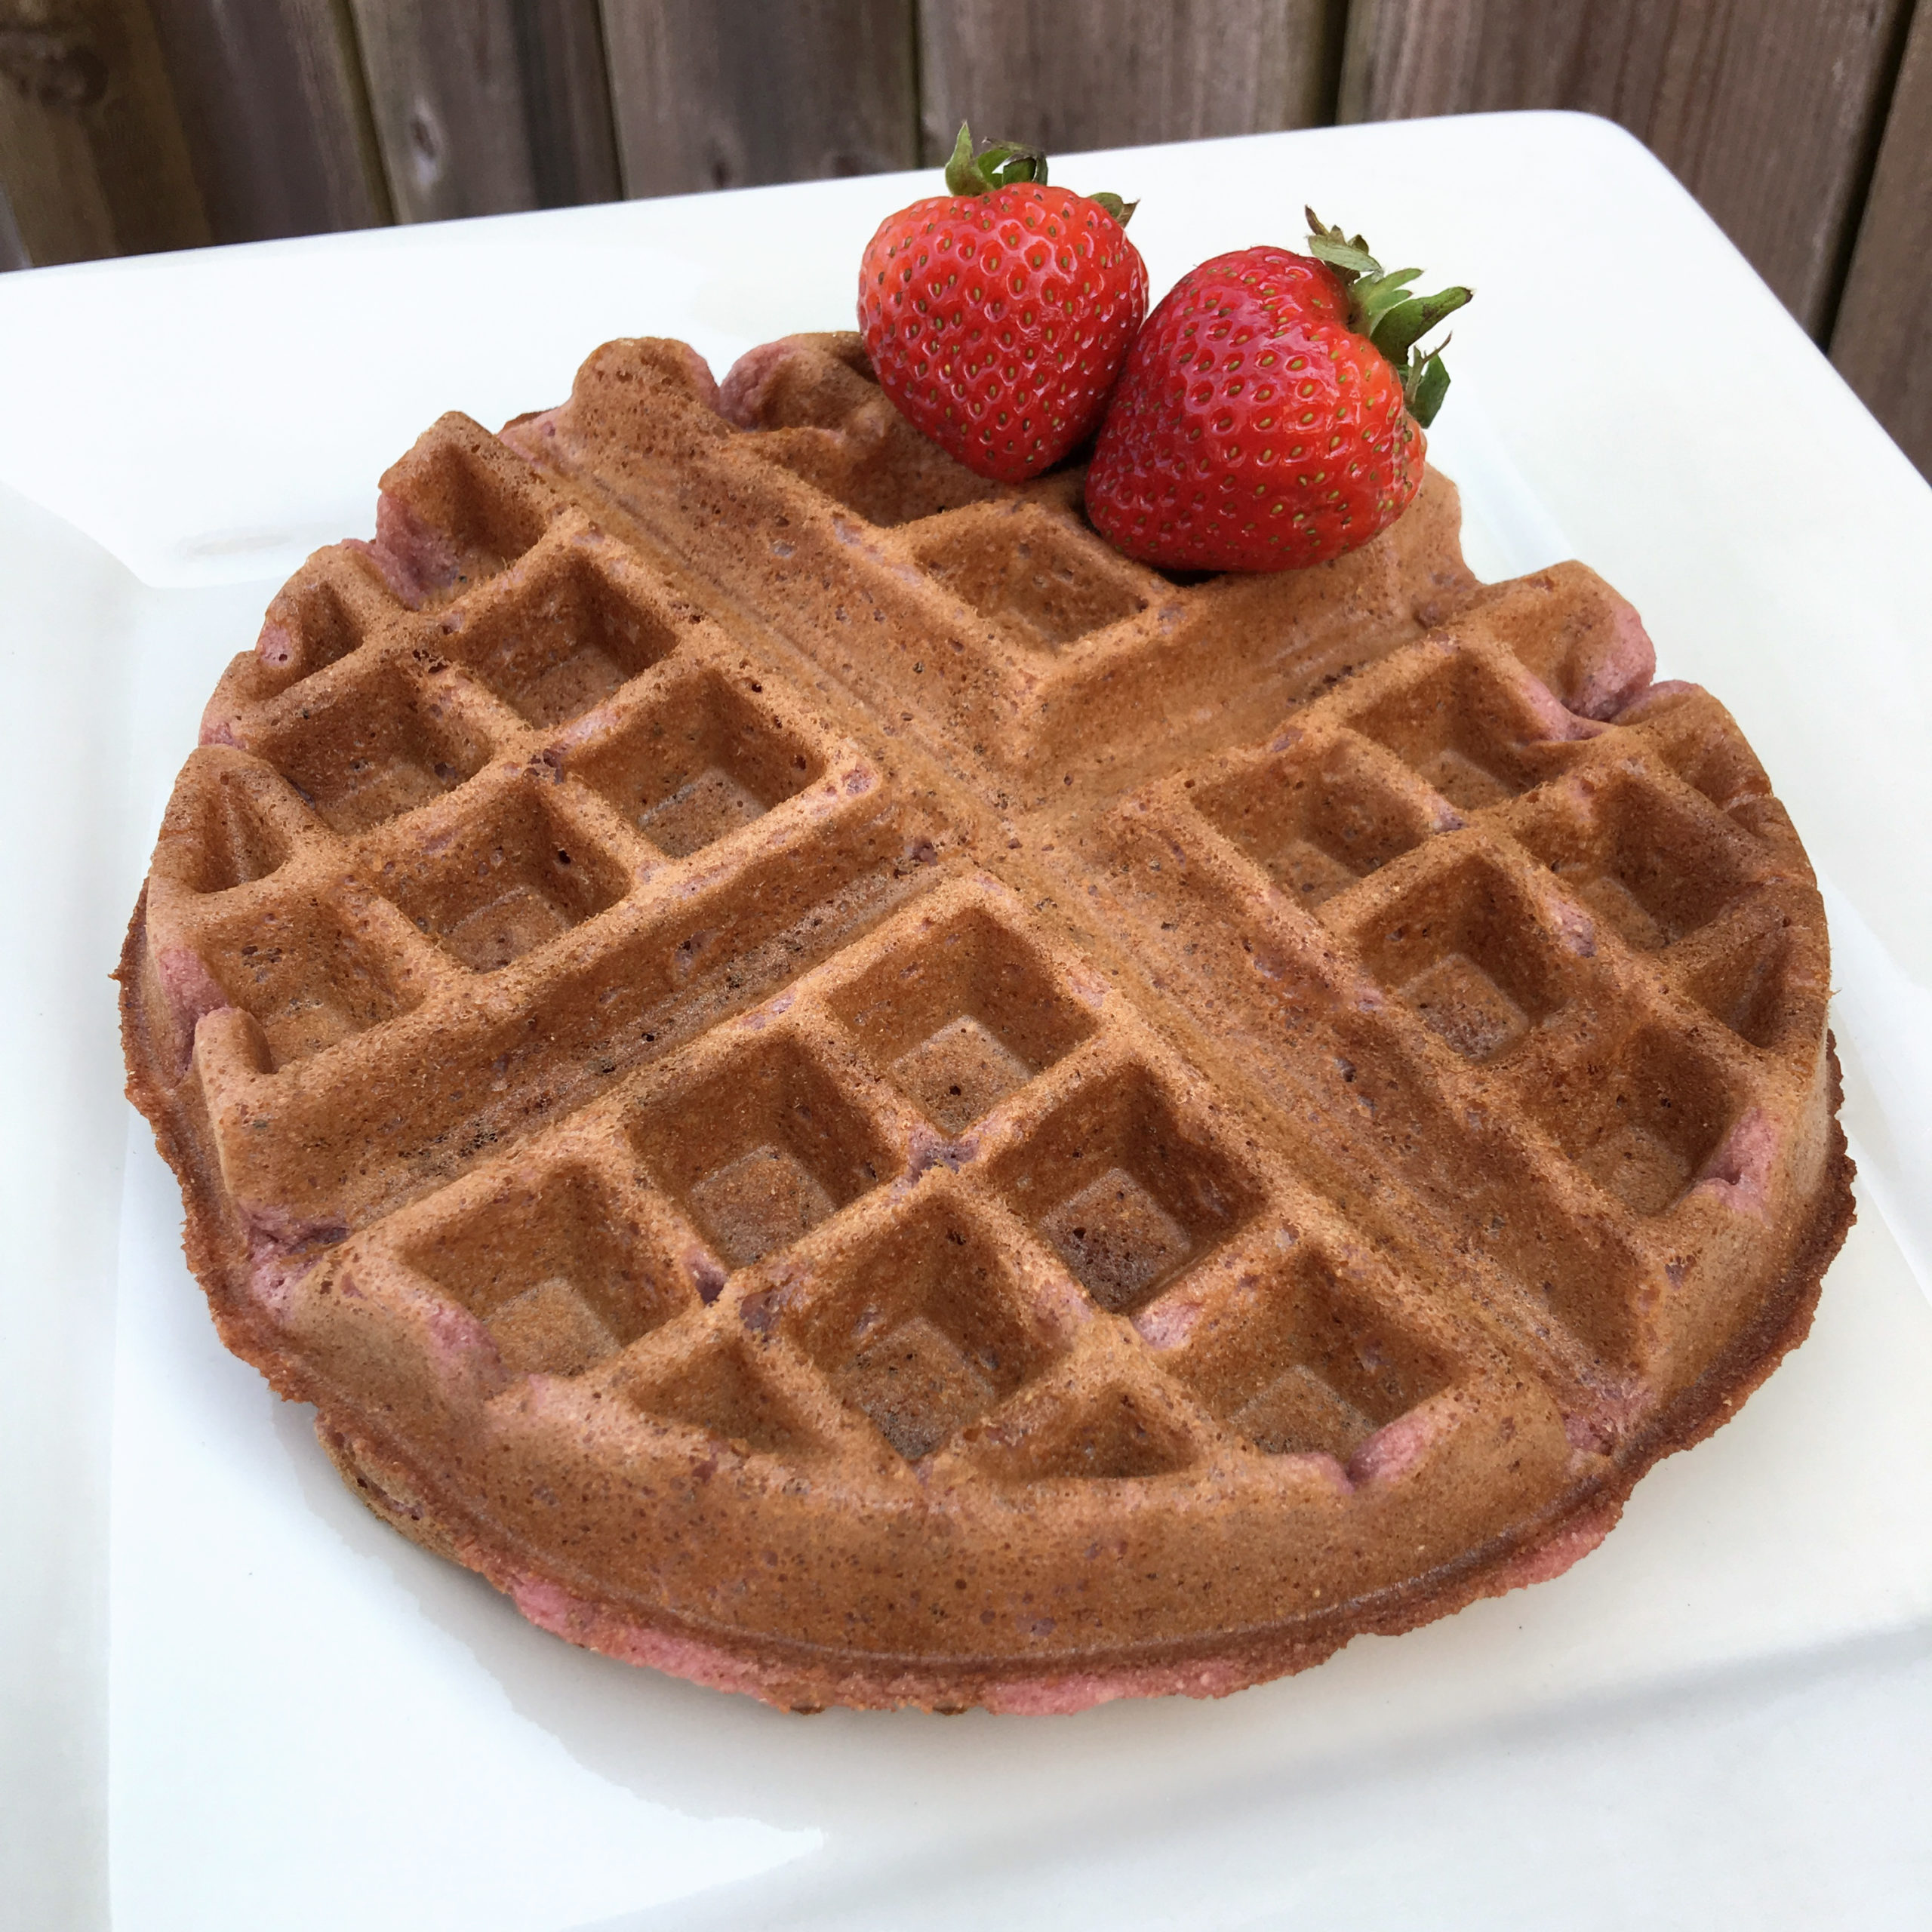 Strawberry Waffles by The Allergy Chef